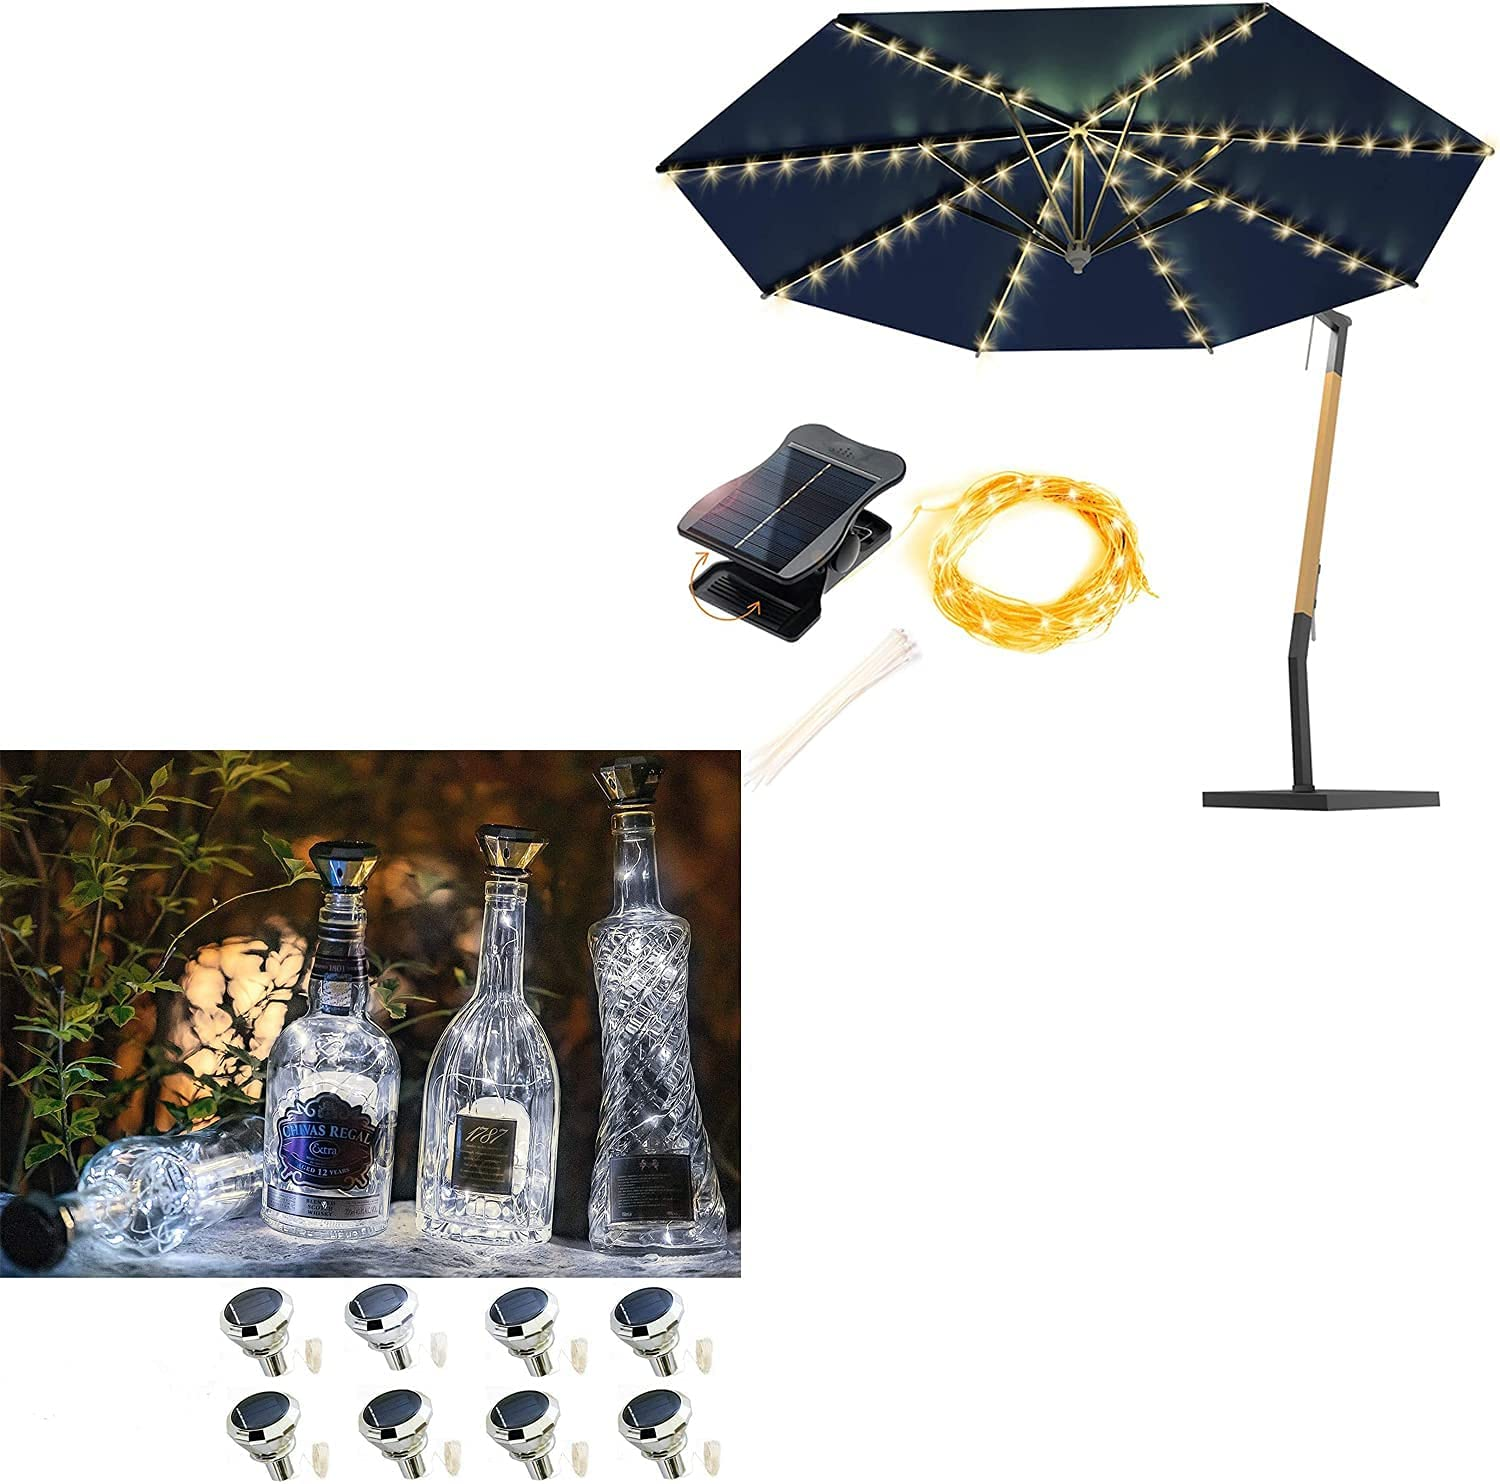 8 Modes Solar Umbrella Discount is also underway Lights Wine + Bottle Pack High quality new